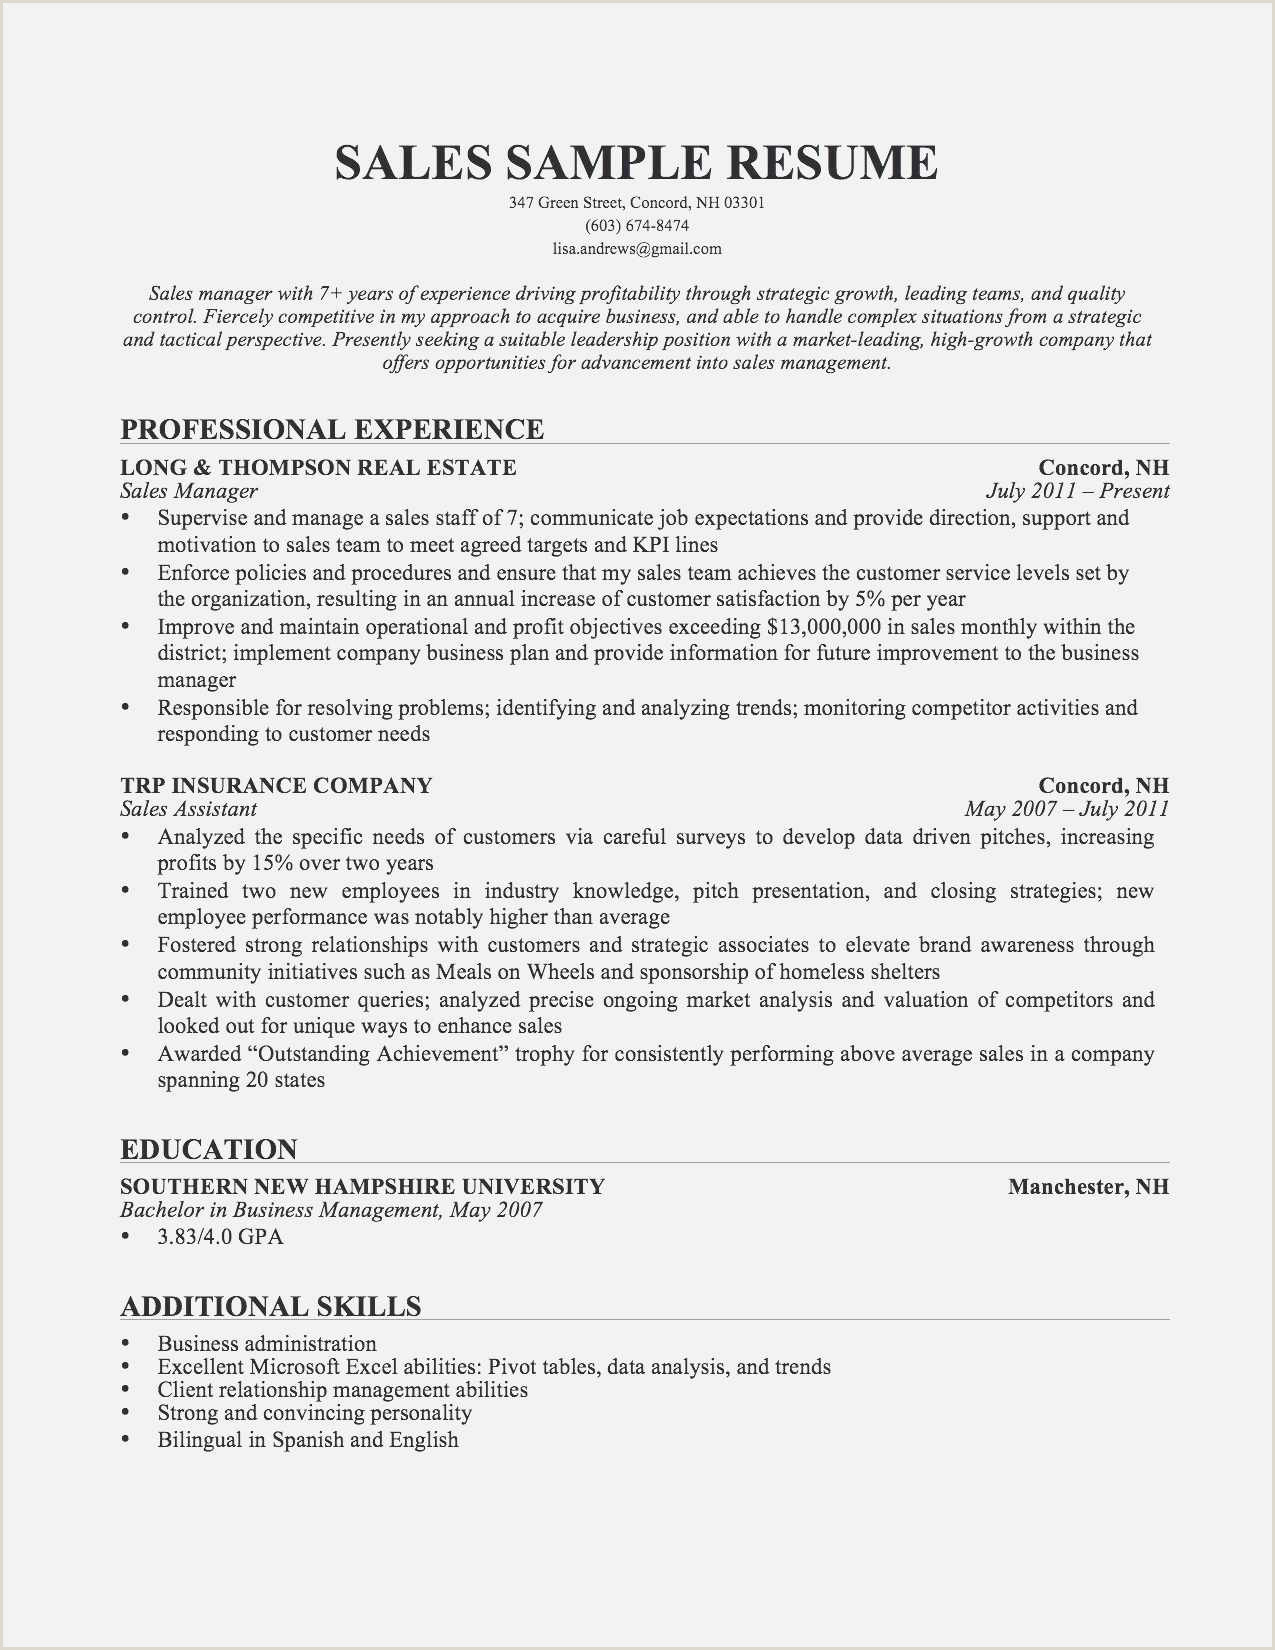 10 excel skills resume examples